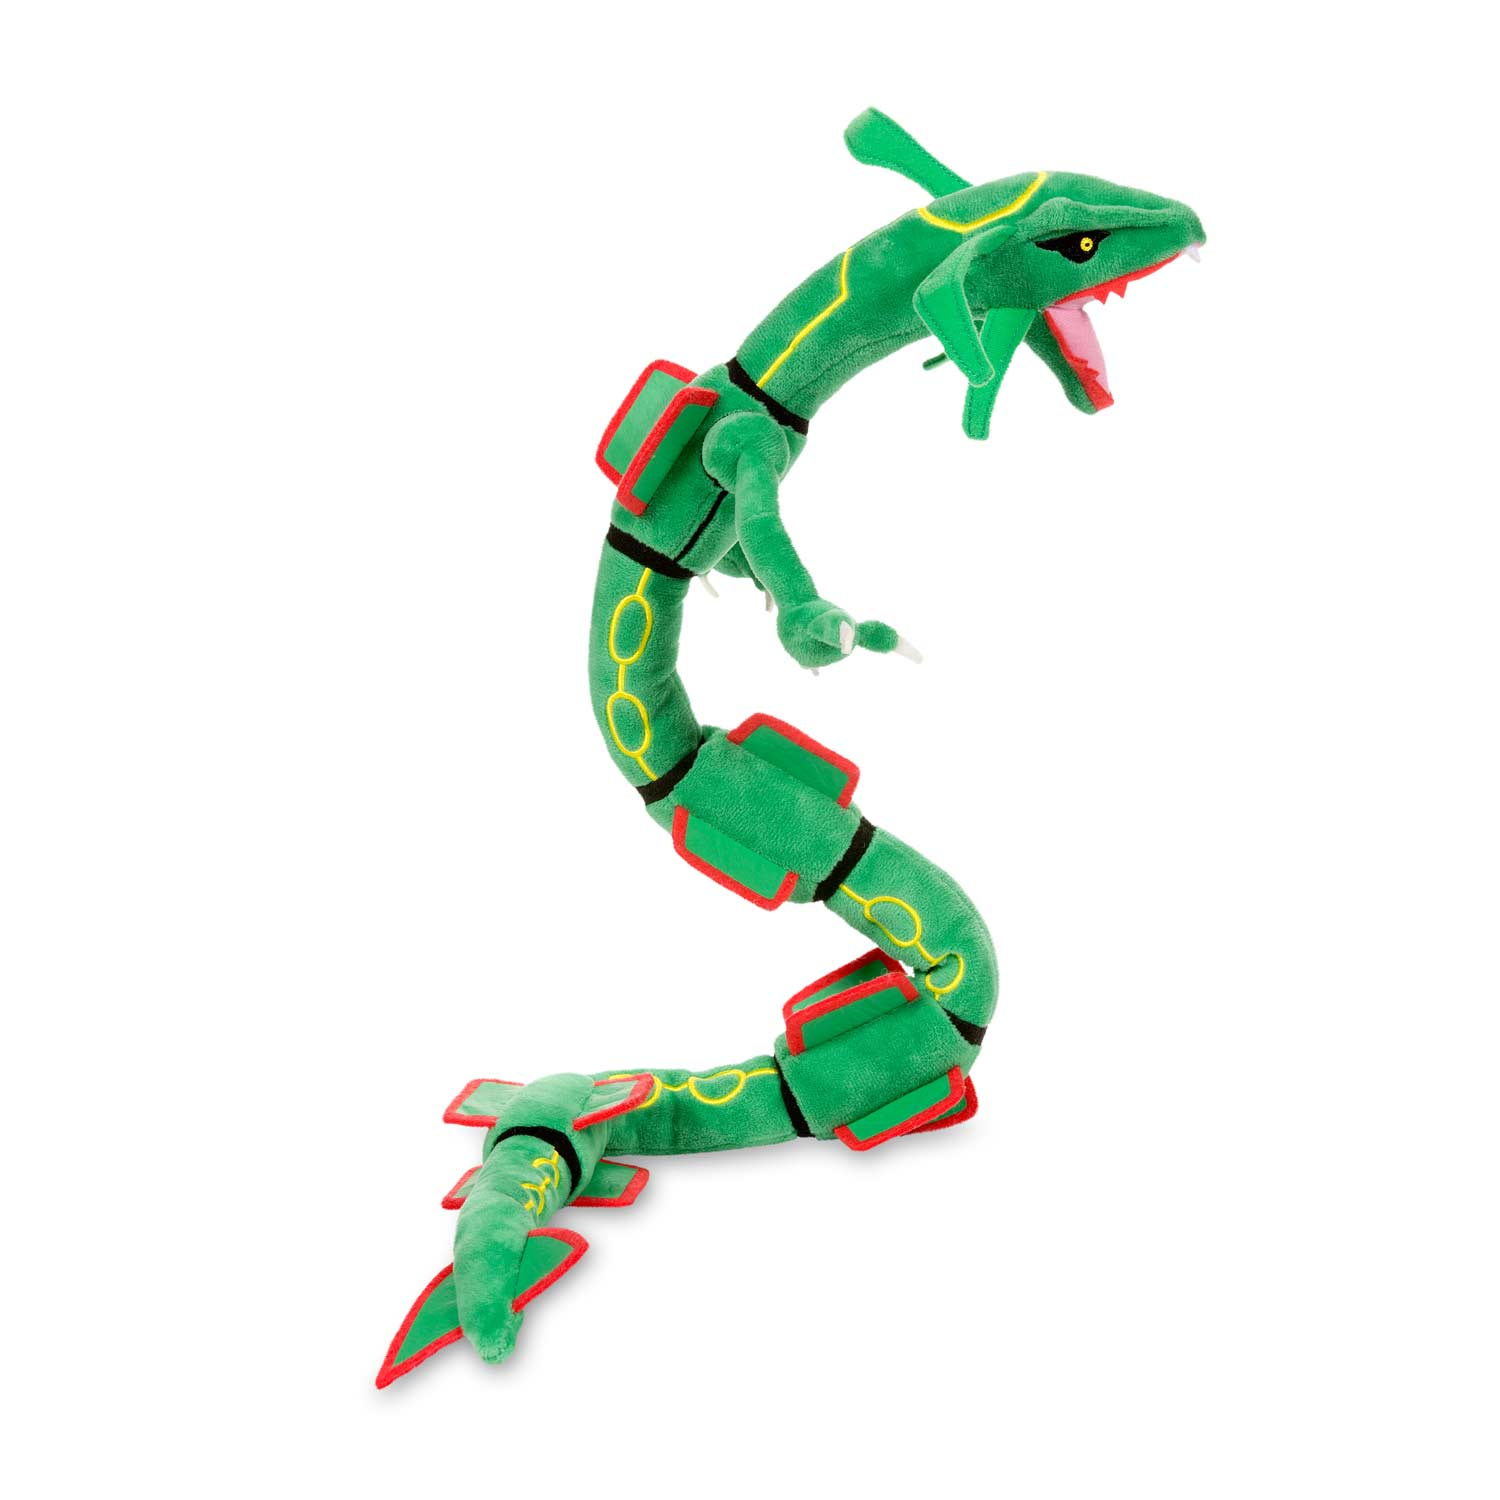 rayquaza poké plush large